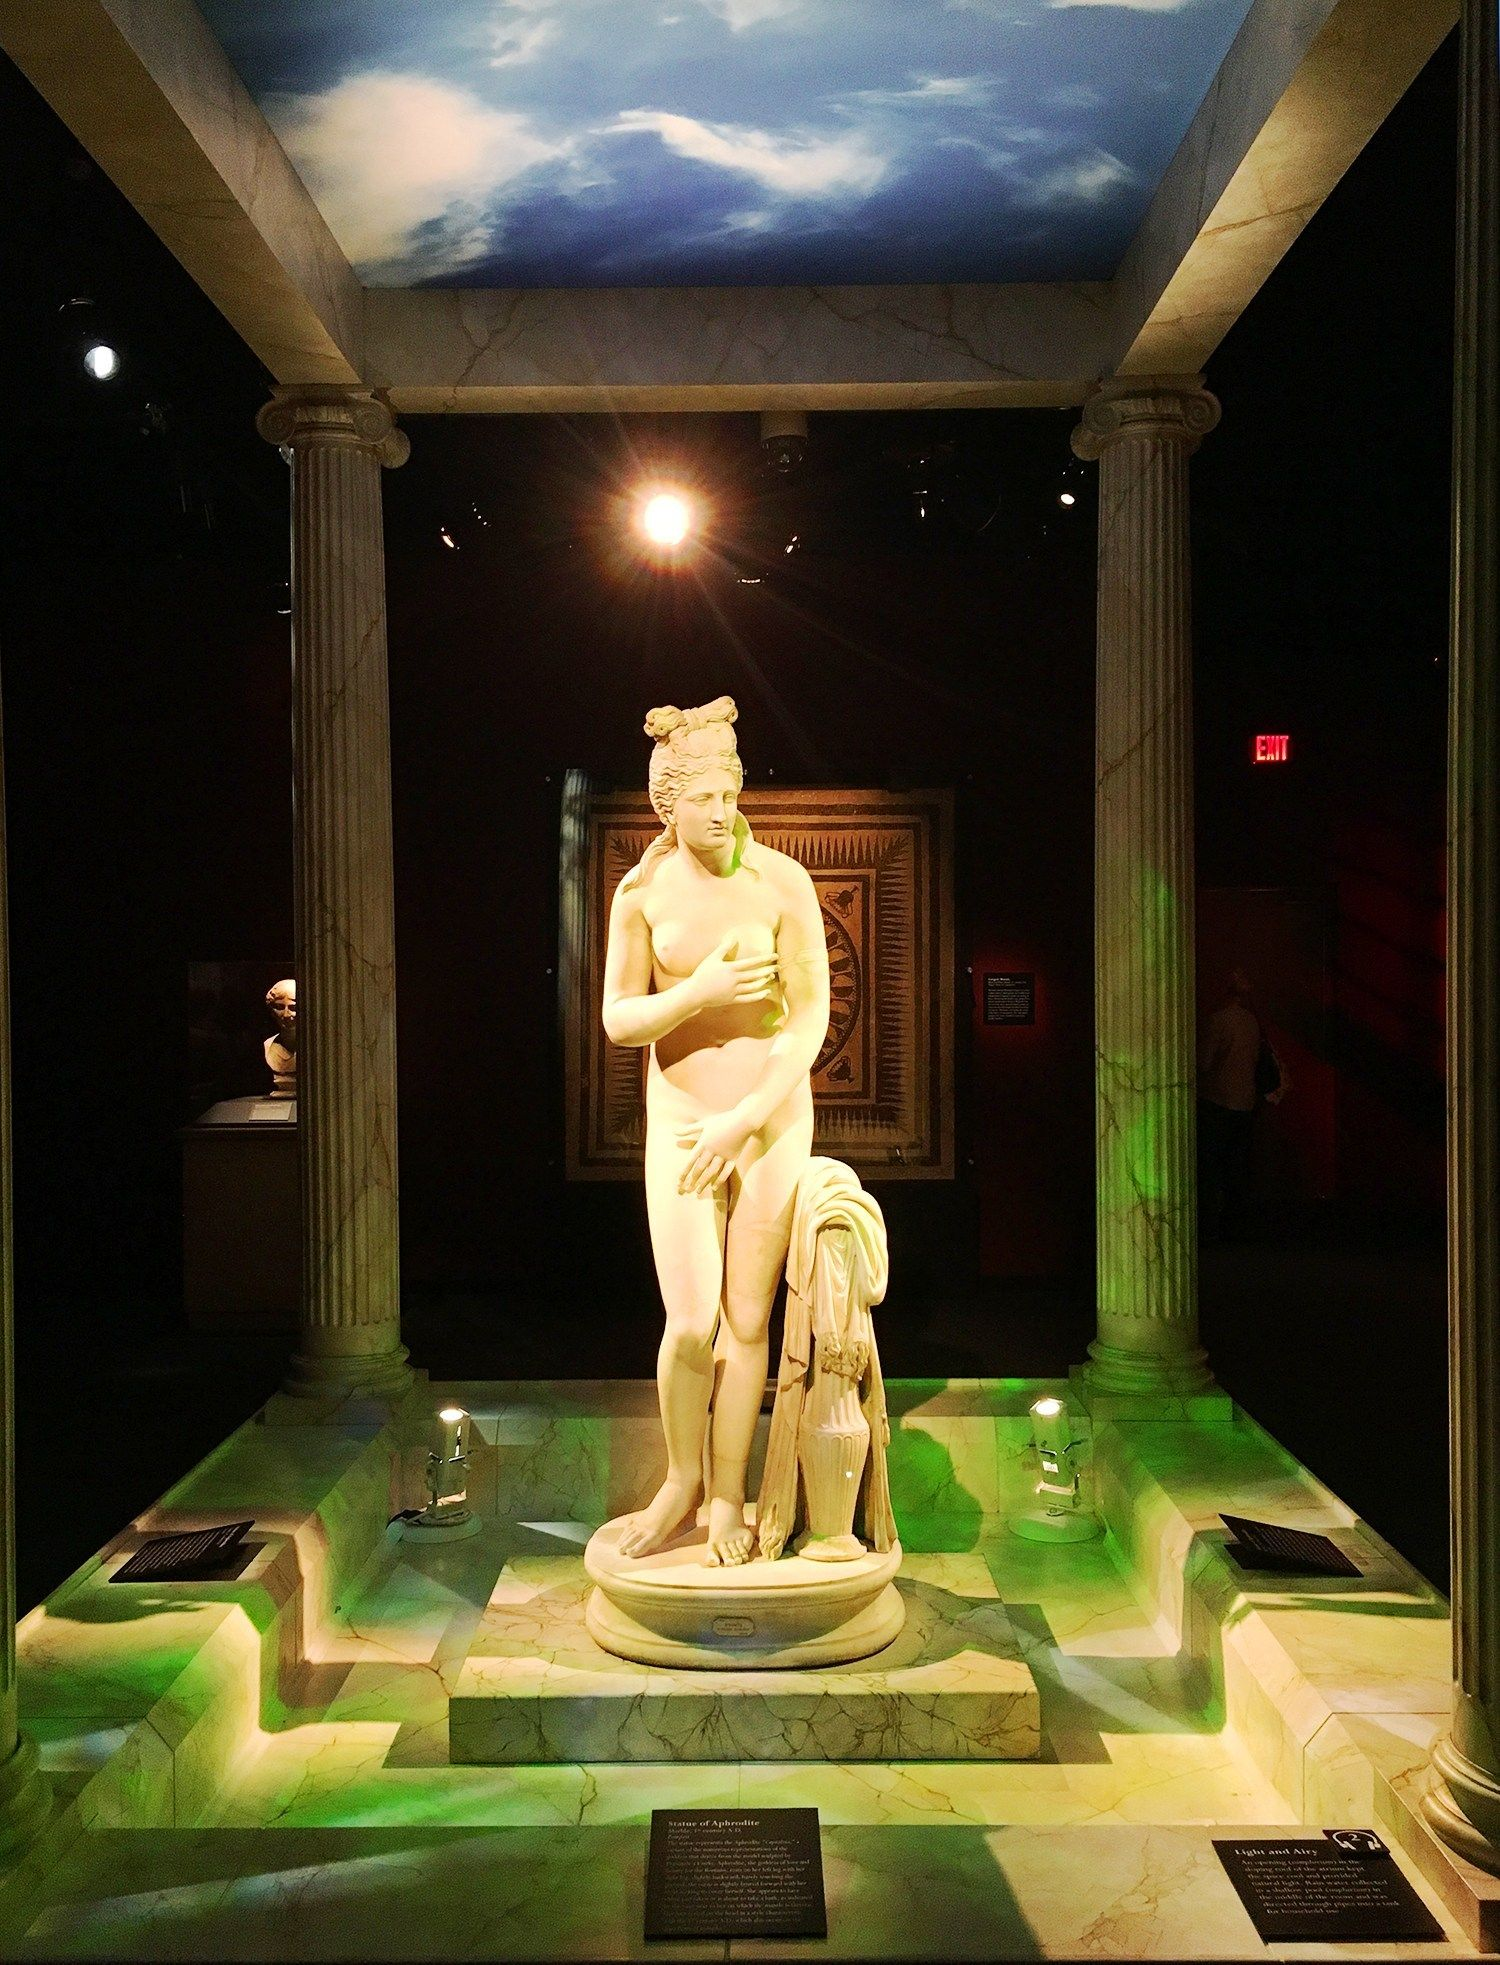 Uncover Artifacts From 2 000 Years Ago At The Pompeii Exhibit